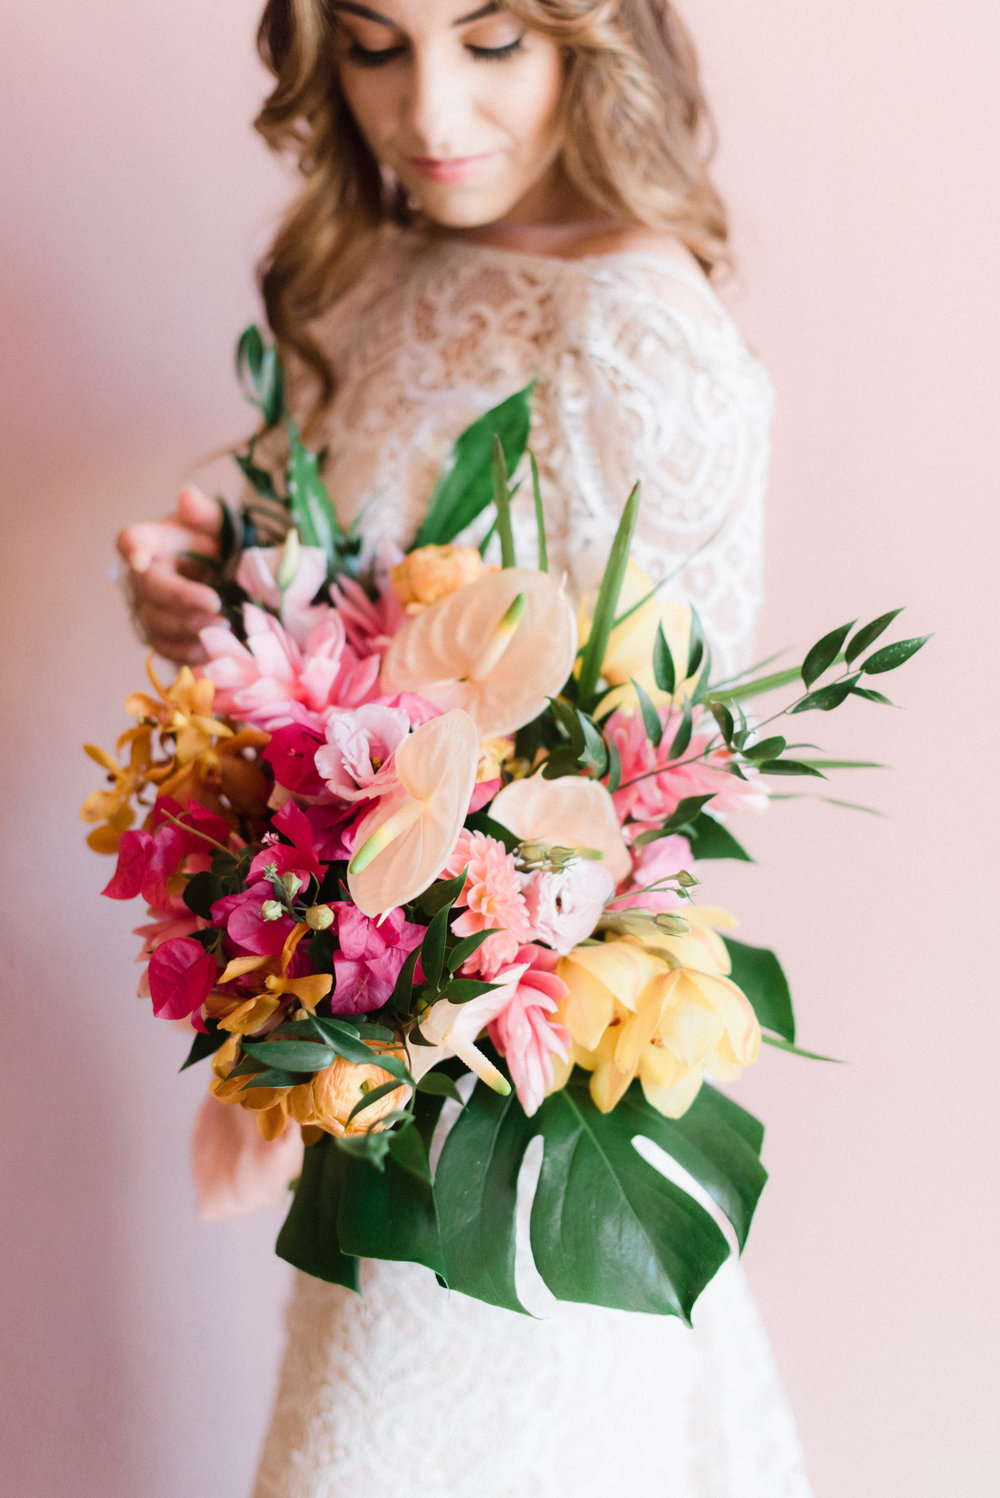 monstera leaves and tropical flowers with bougainvillea for big flowing bouquet.jpg